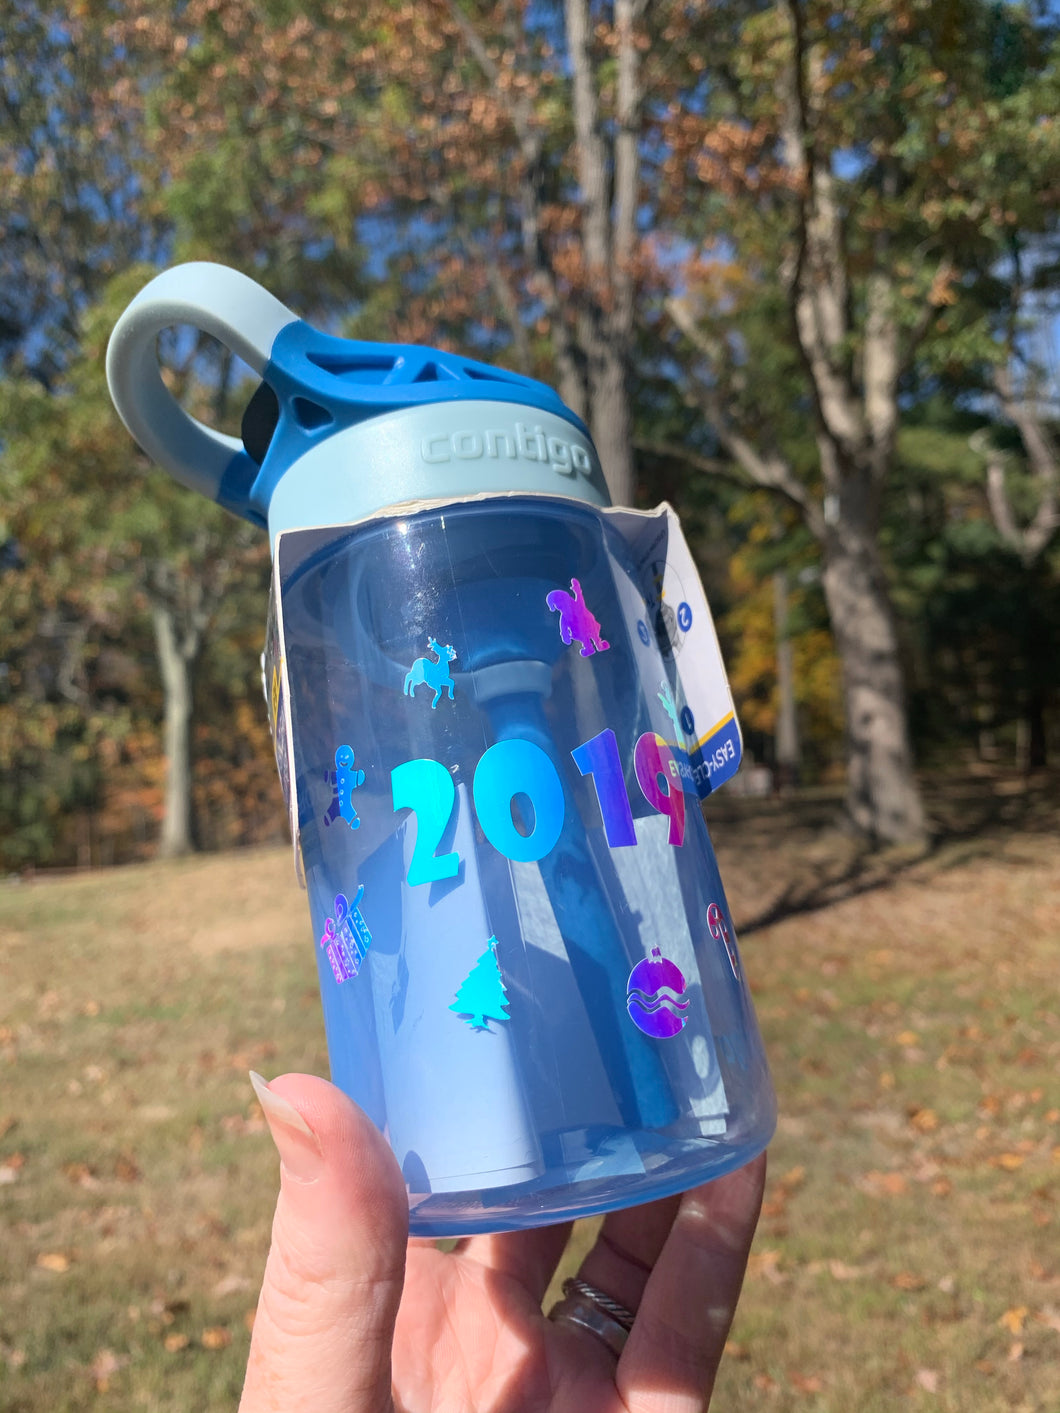 Holographic 2019 Christmas Inspired Contigo Water Bottle